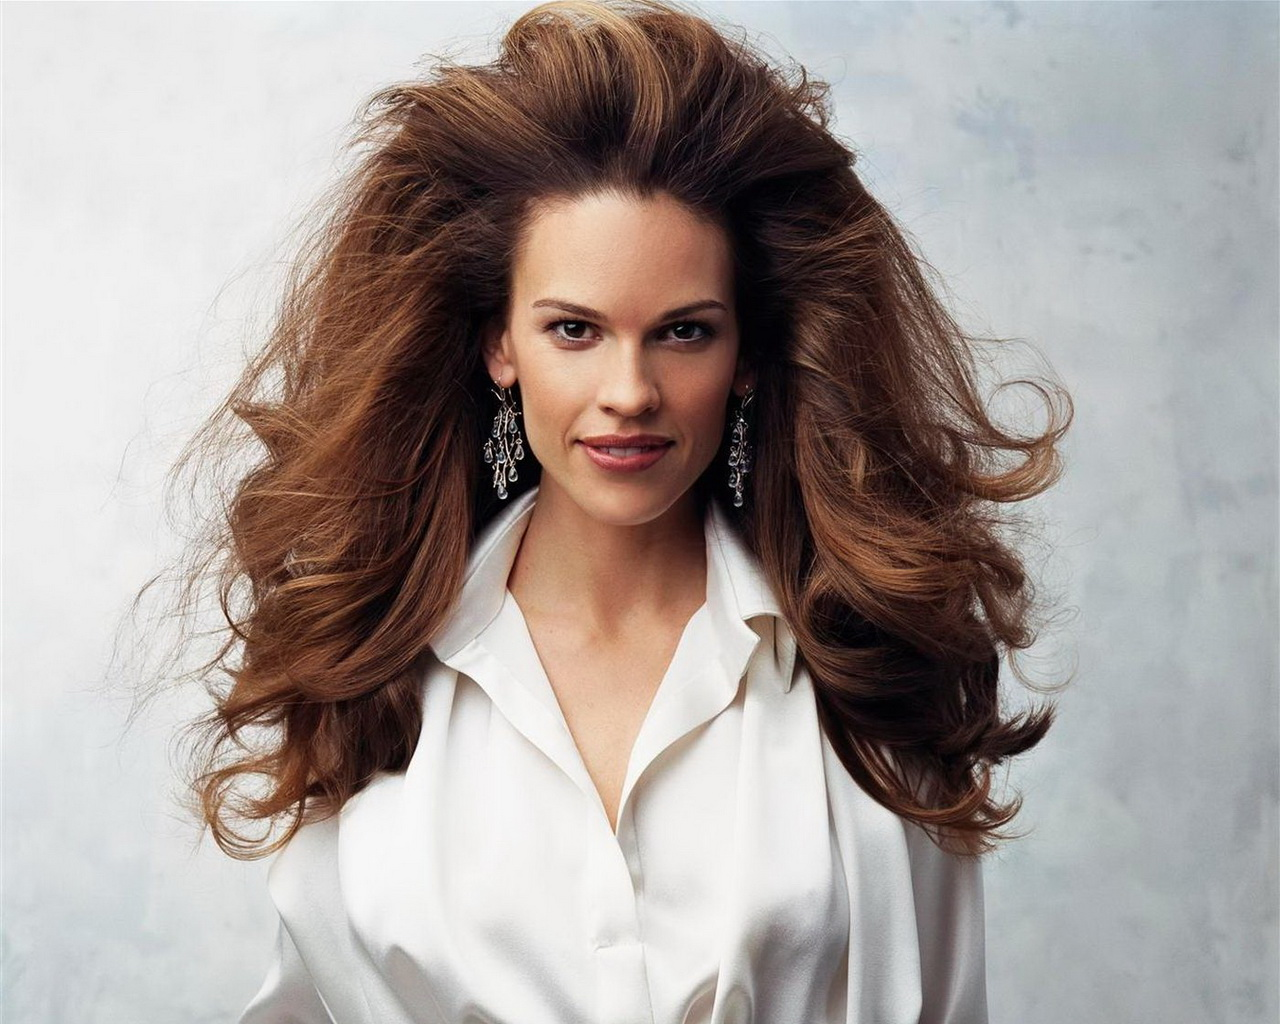 Interview with Hilary Swank